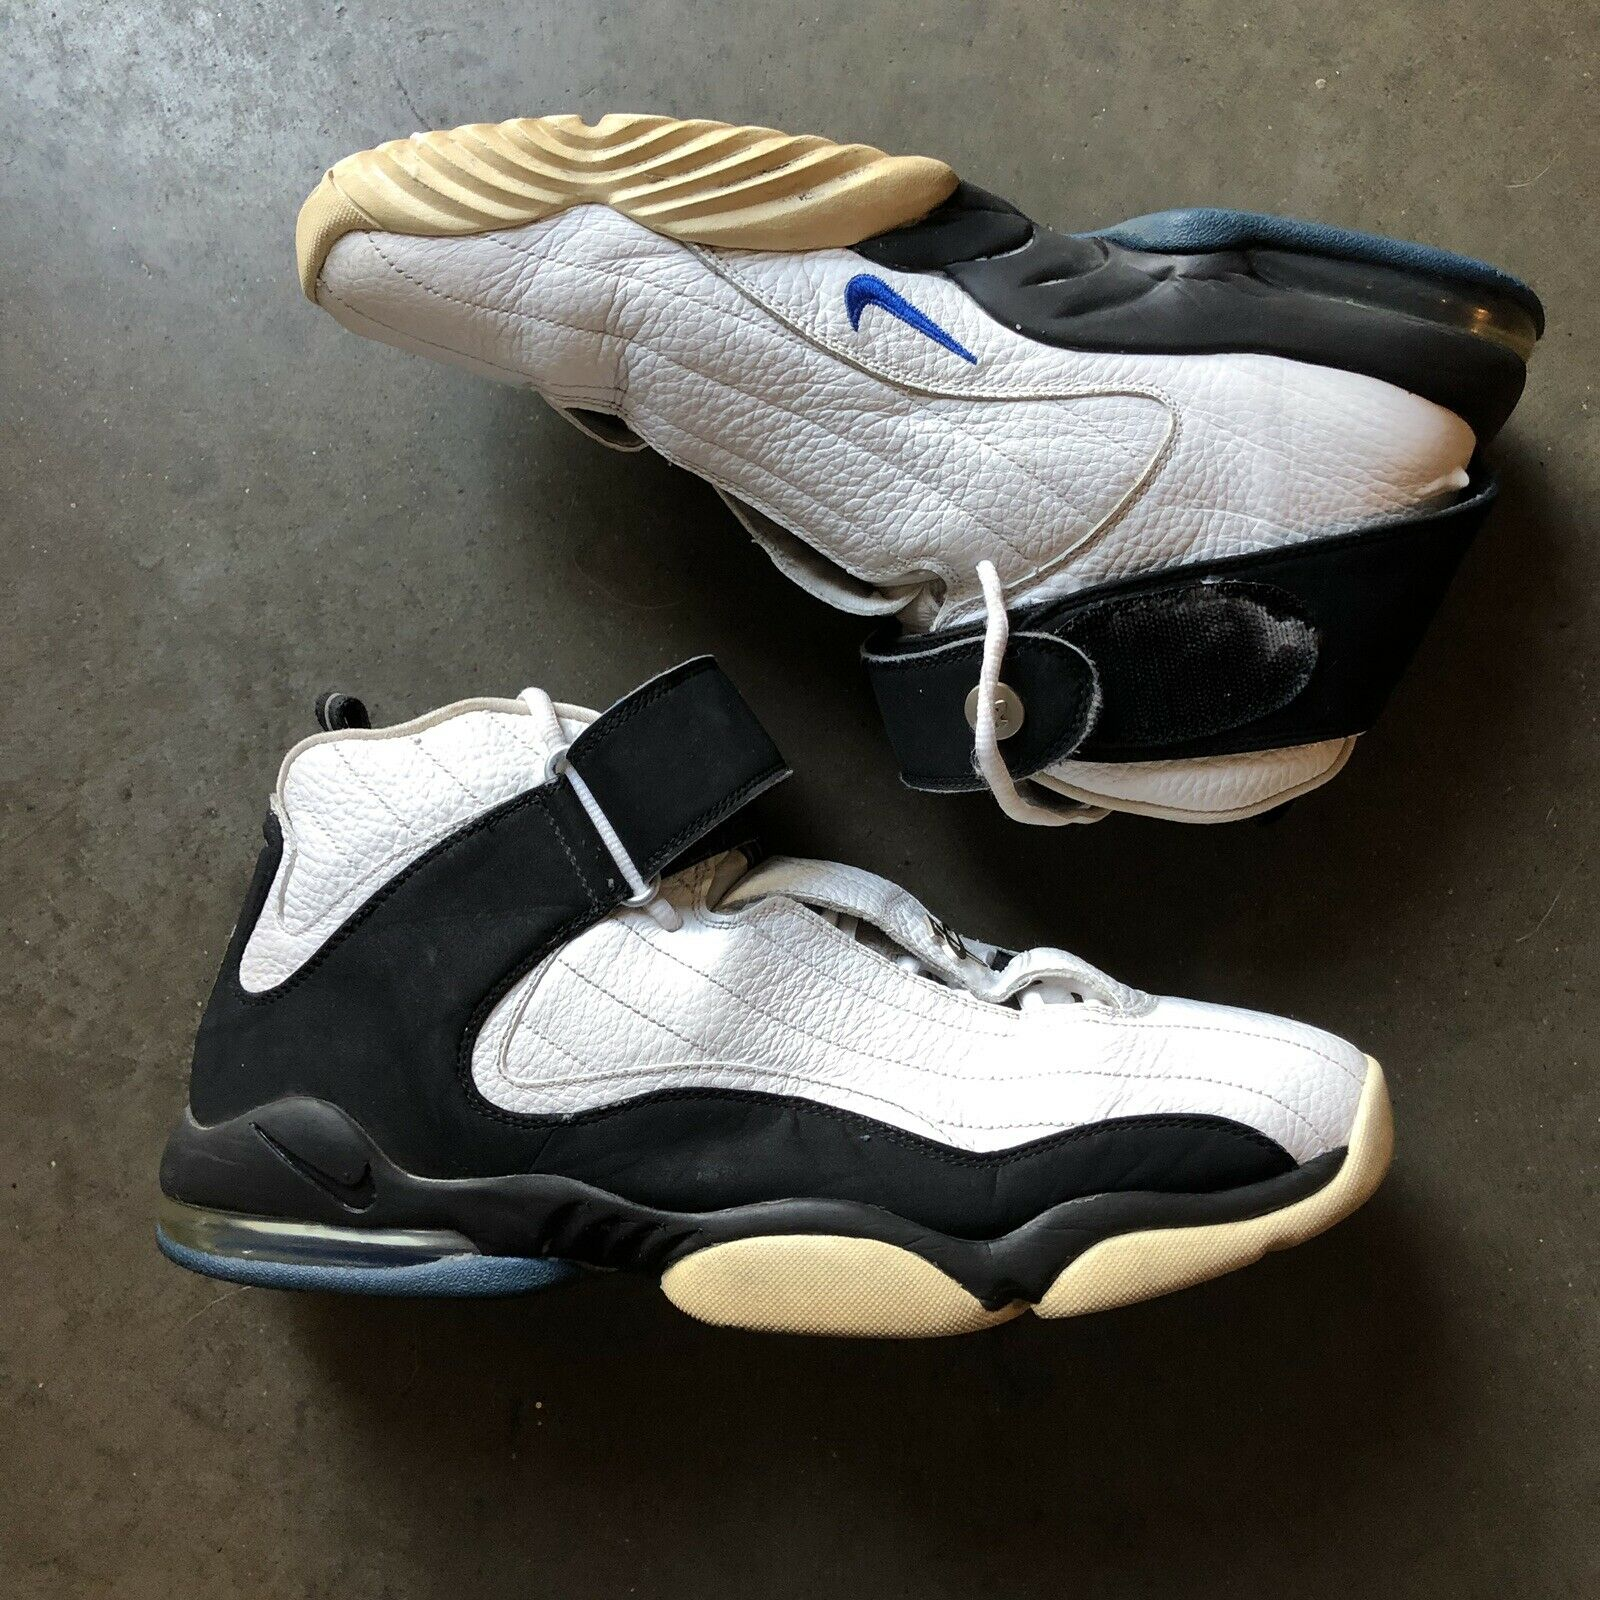 Men's 2005 Nike Air Max Penny Hardaway 4 Four White Black Royal Sz 14 312455-101